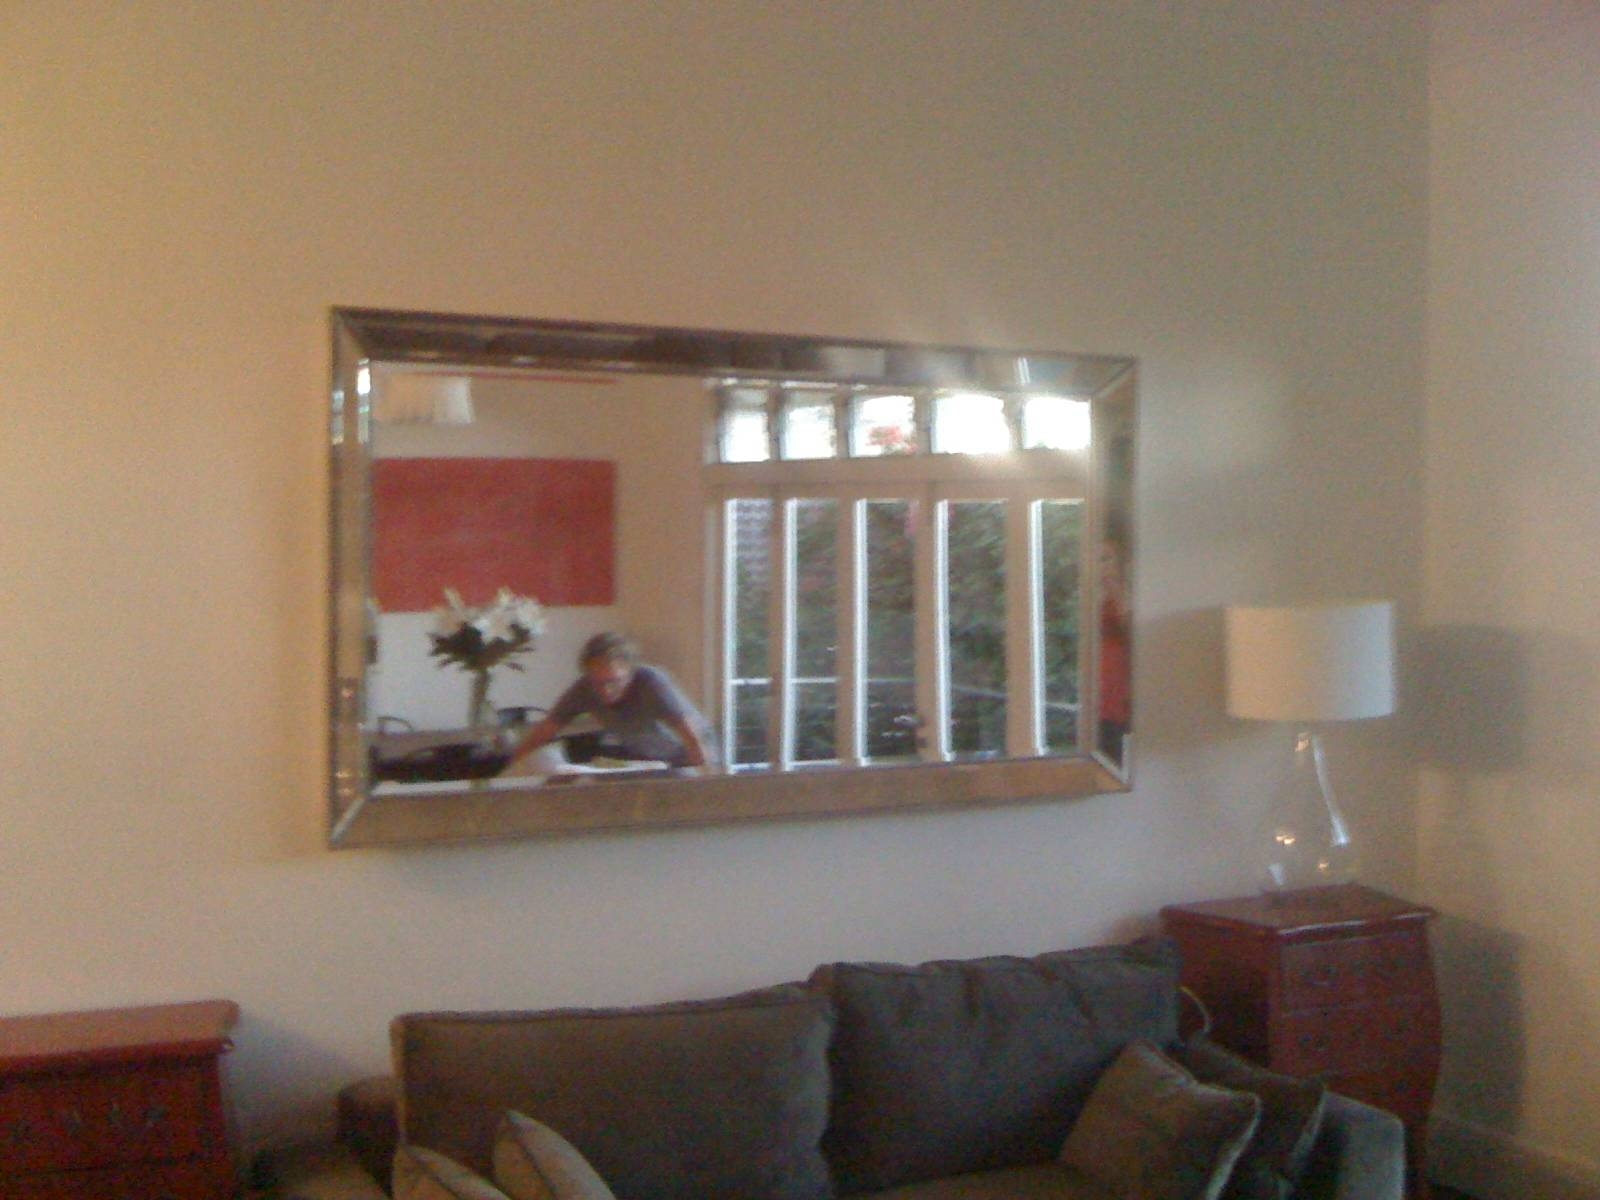 Picture Hanging Sydney | Picture & Mirror Hanging Service with Mirror Above Sofas (Image 12 of 15)